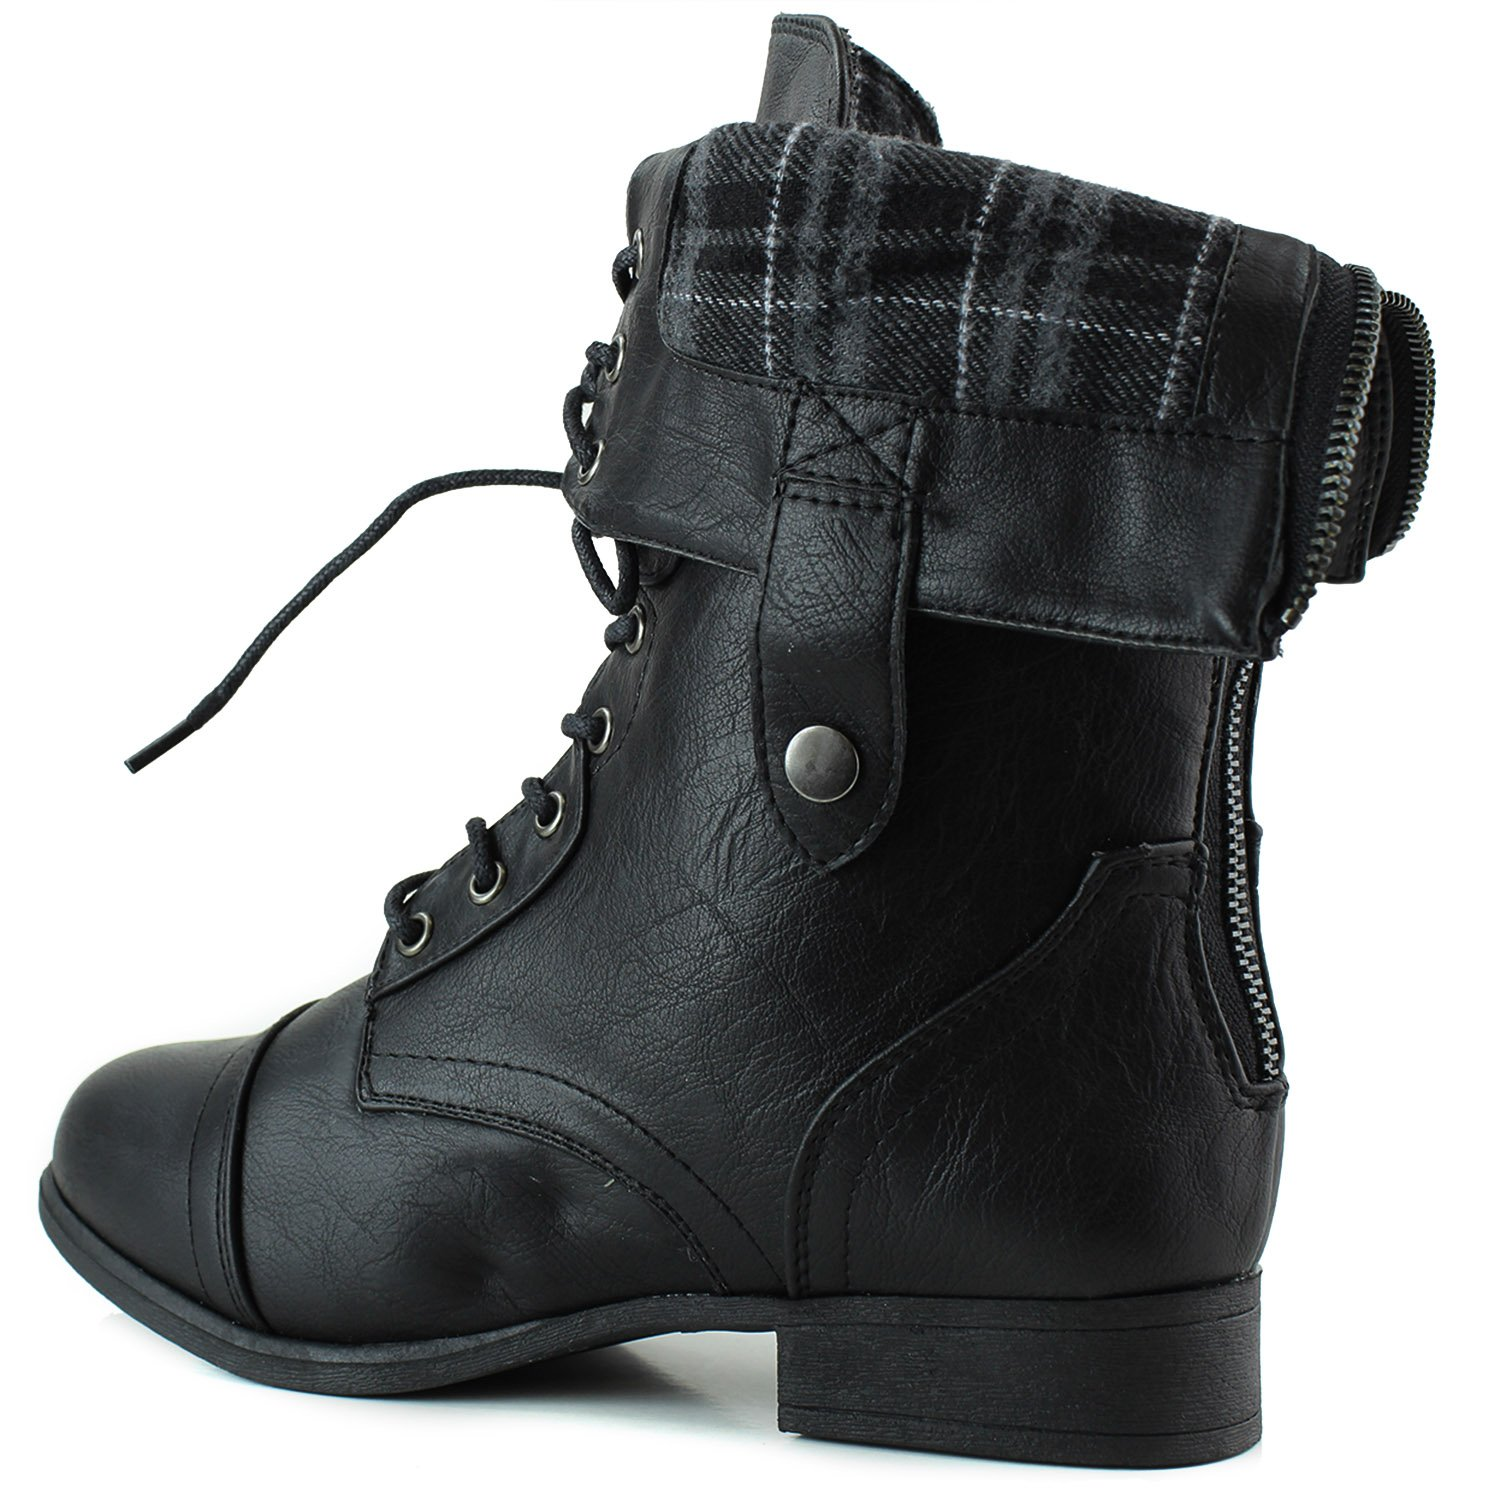 Brilliant Brown Military Combat Boots - Yu Boots